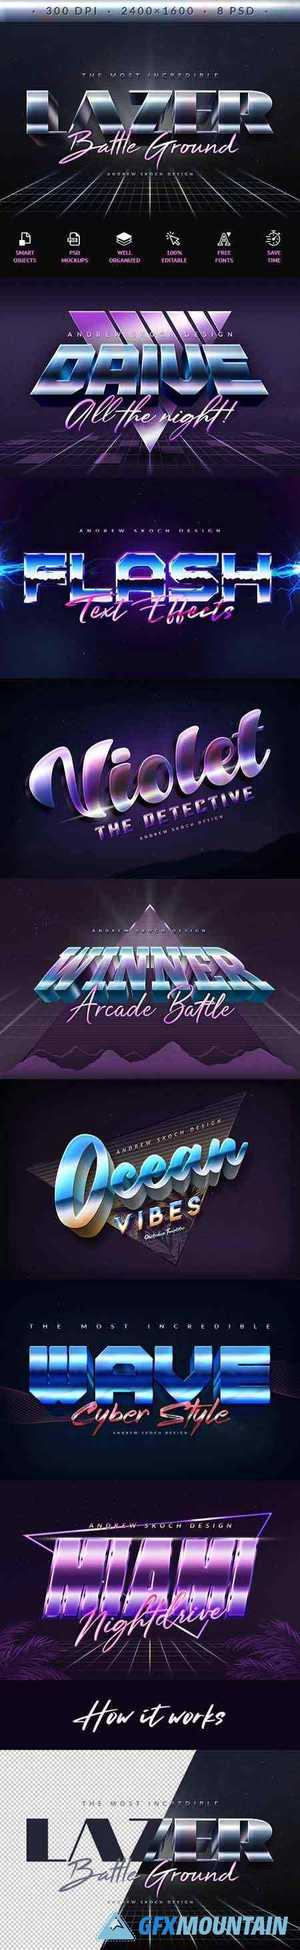 80s Retro Text Effects 26539957